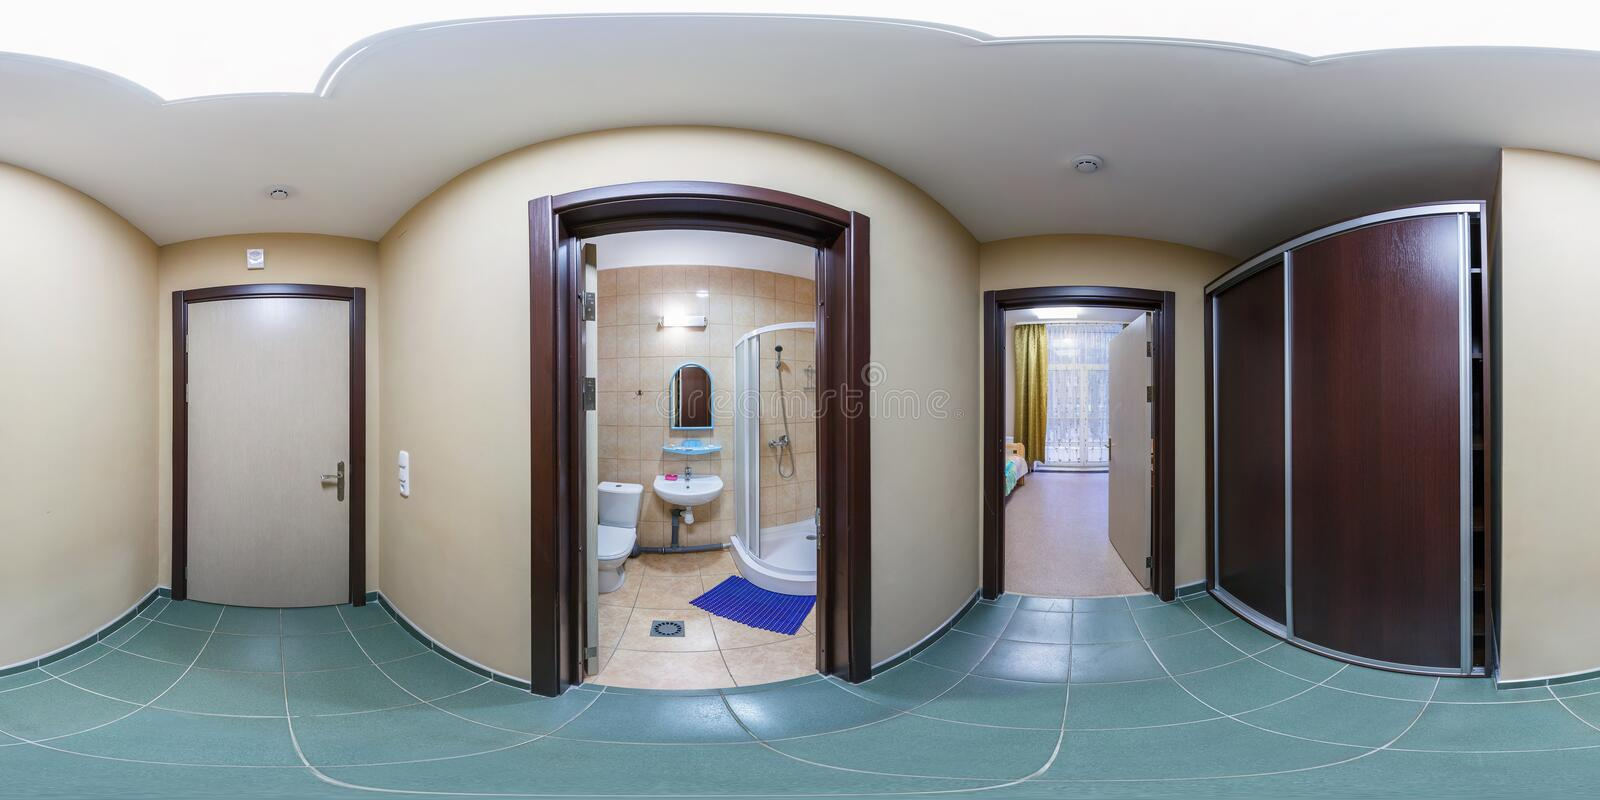 SOLIGORSK, BELARUS - SEPTEMBER, 2013: full seamless spherical panorama 360 degrees in corridor rooms of small hotel with view of royalty free stock photography